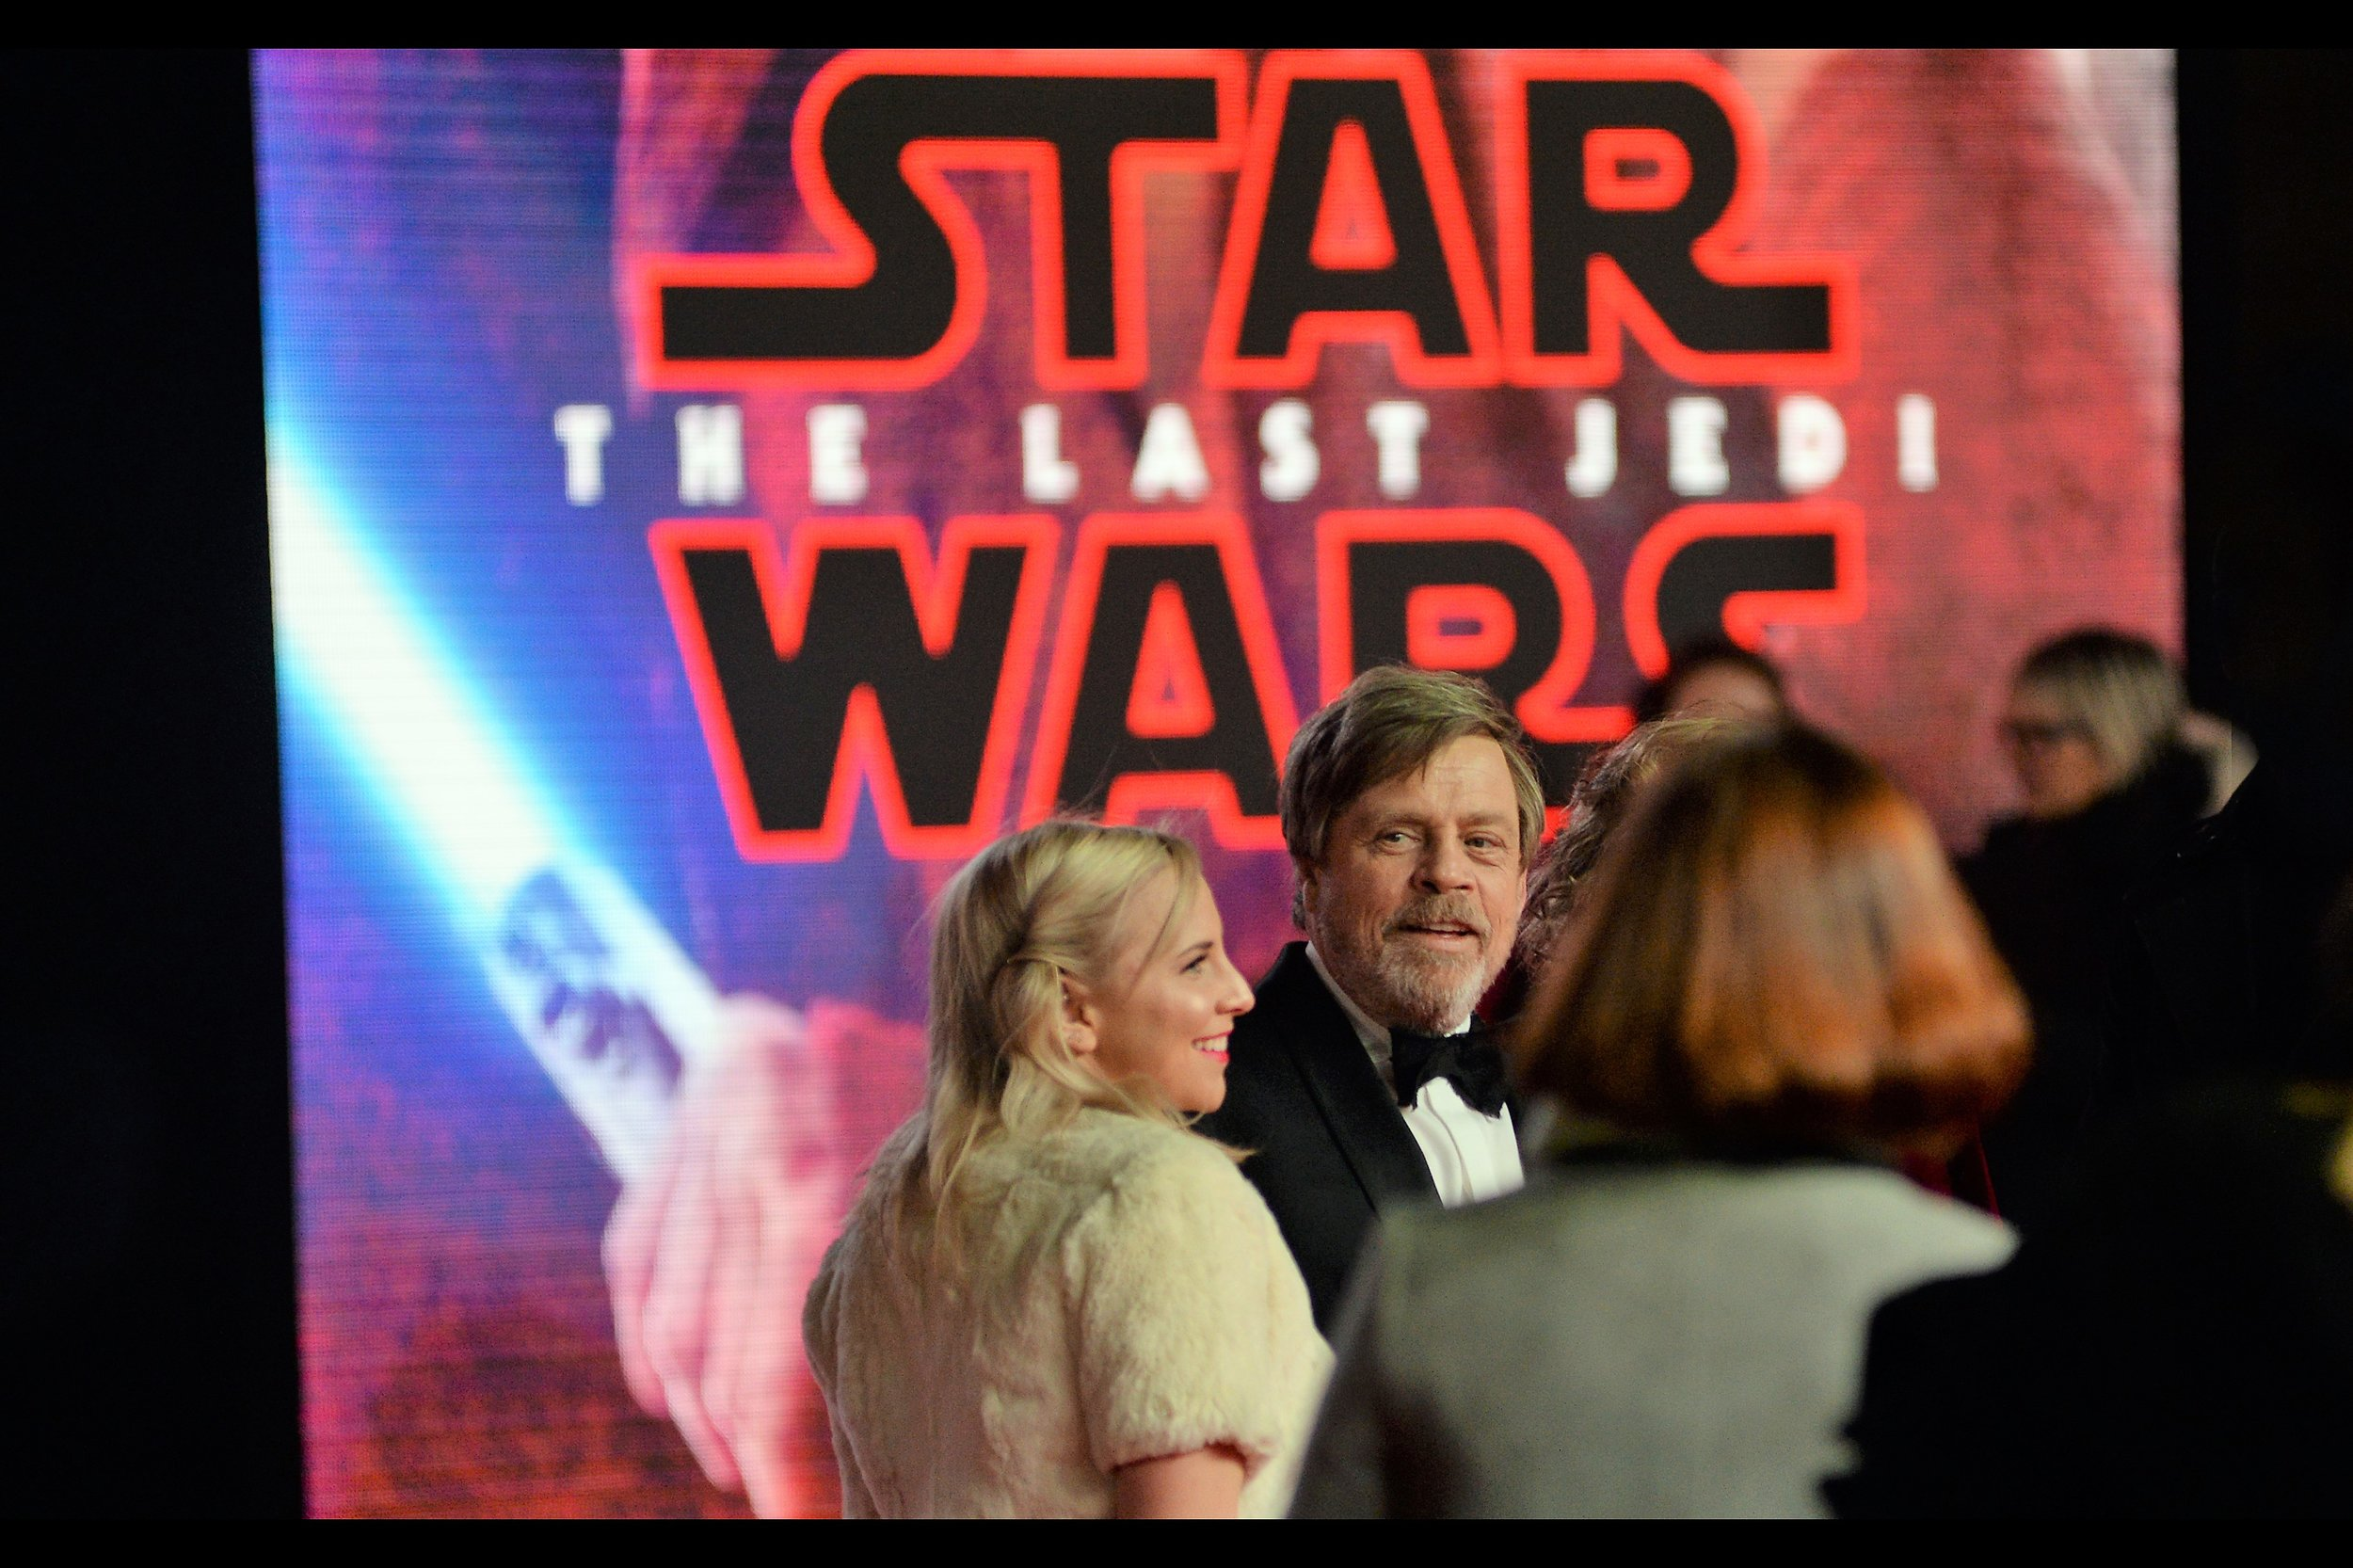 It's Mark Hamill! He plays Luke Skywalker in the film, and I've previously photographed him at the premieres of   Guardians of the Galaxy   and   Avengers Age of Ultron   (I think?) as well as   this year's GQ Awards  . But this is he first time I've photographed him at a Star Wars premiere.